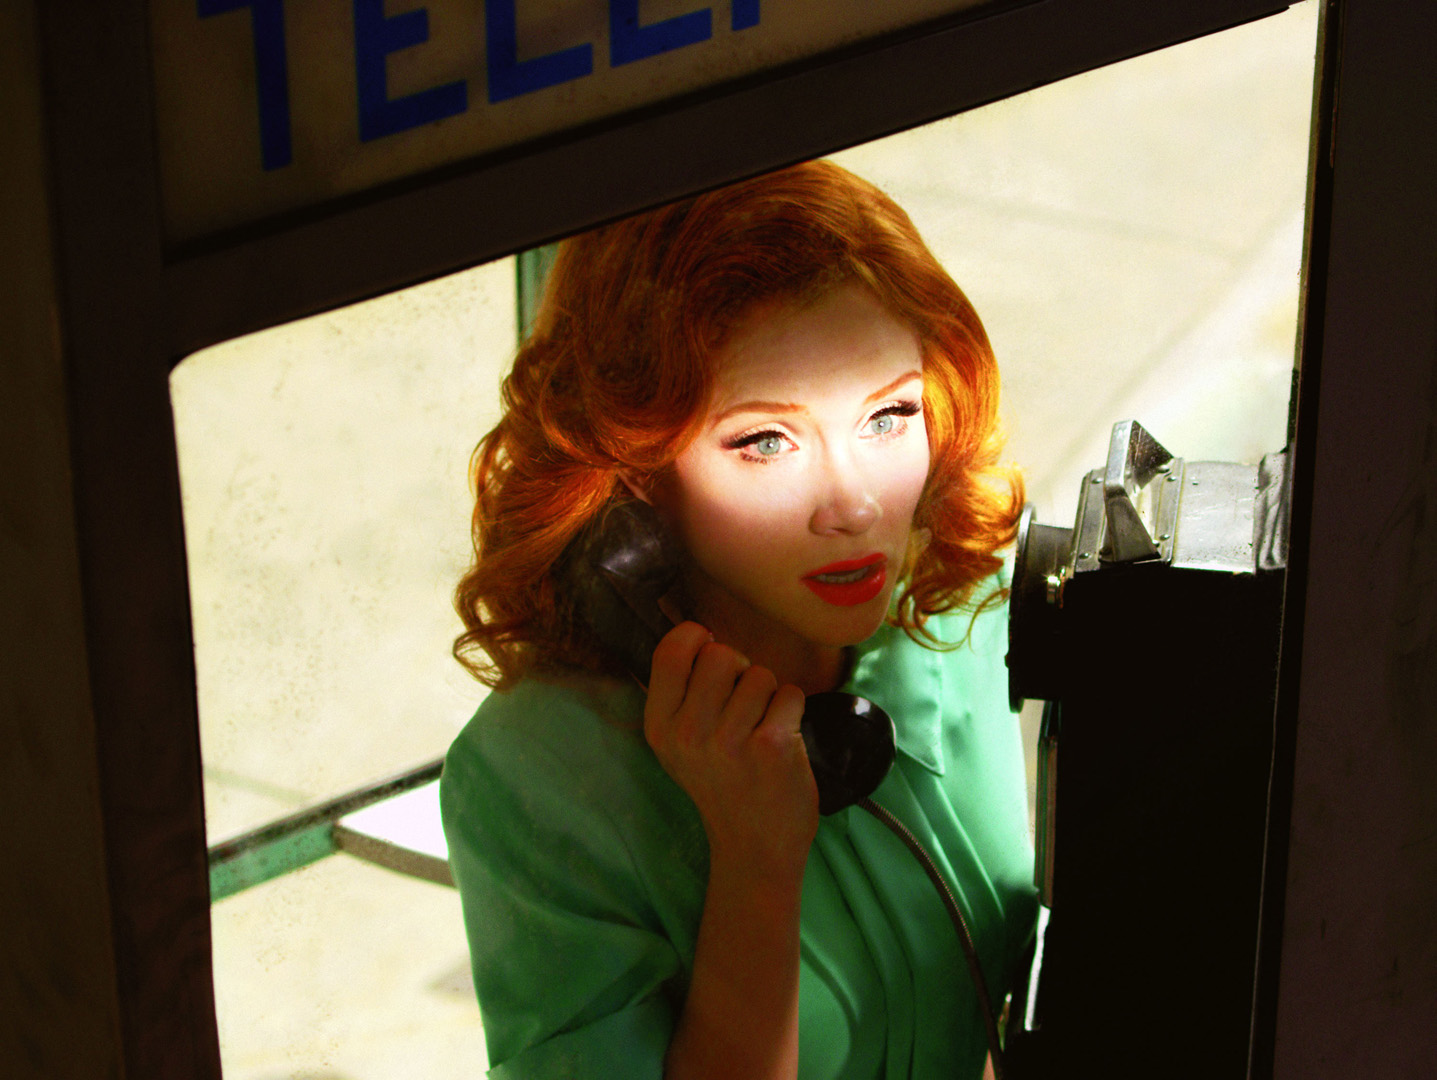 Alex Prager, Despair Film Still #2, 2010. © Alex Prager. Courtesy The Photographers Gallery